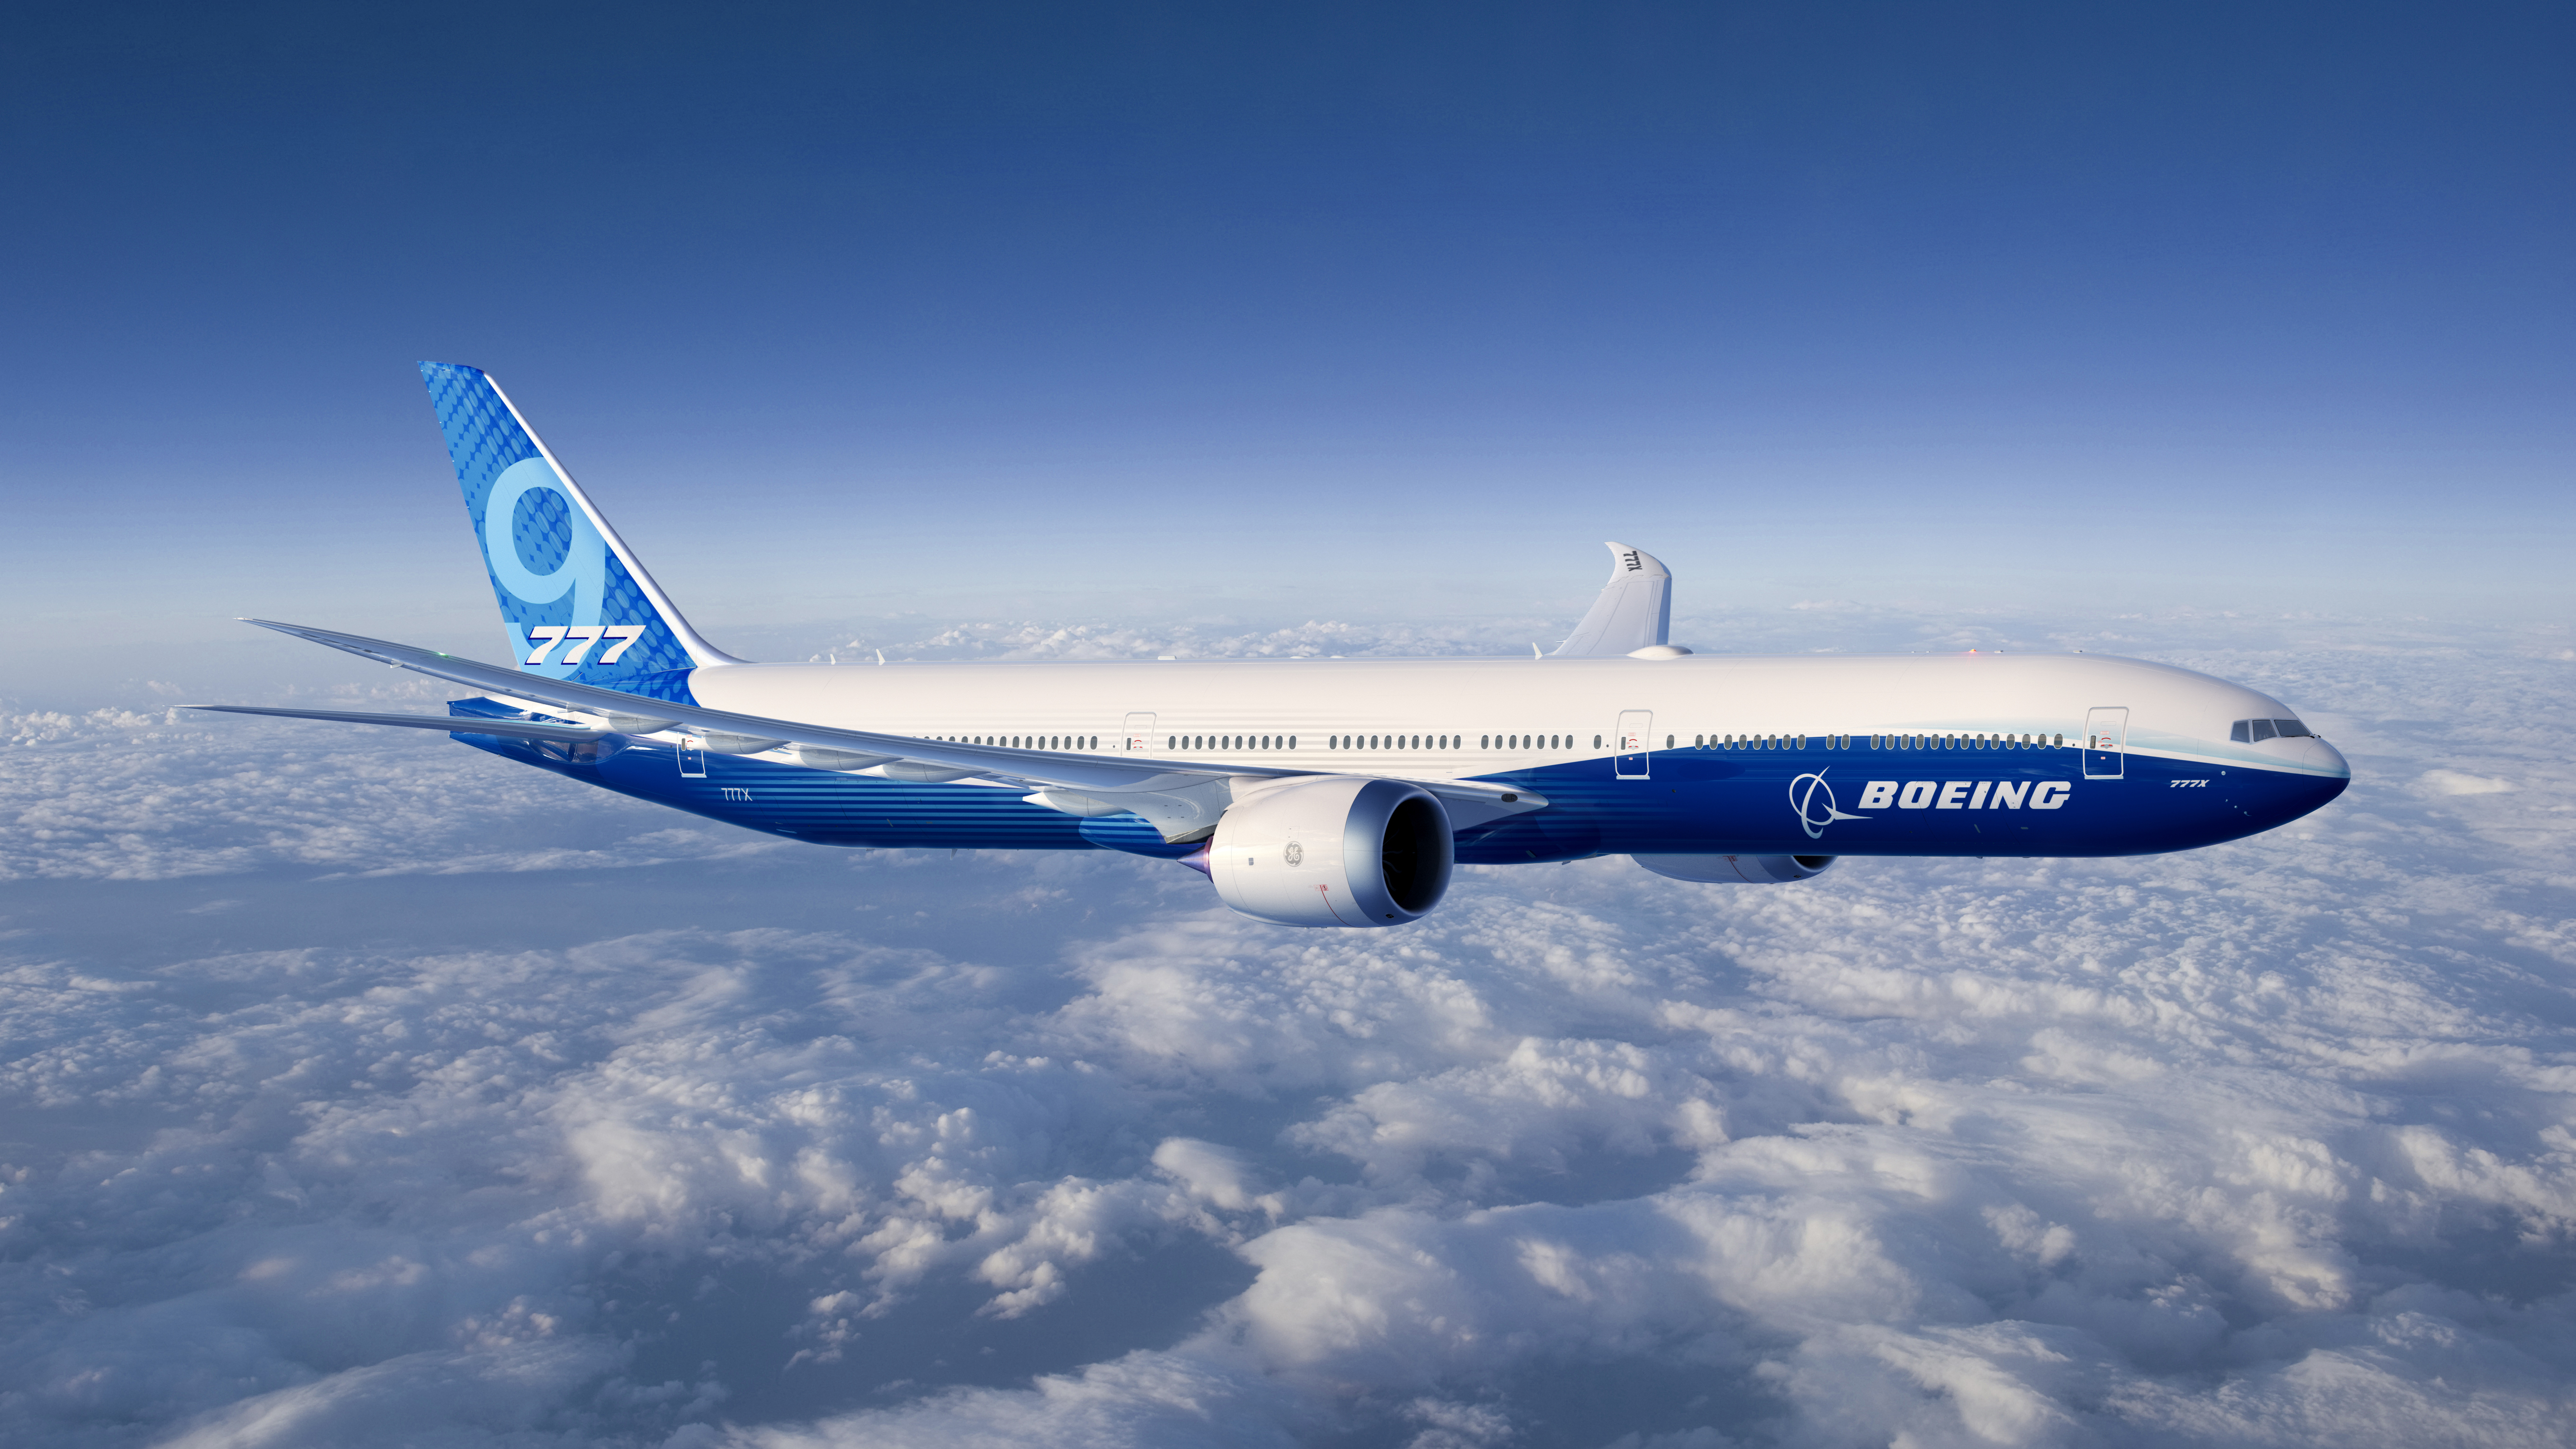 Boeing delays ultra-long-range 777X widebody jet